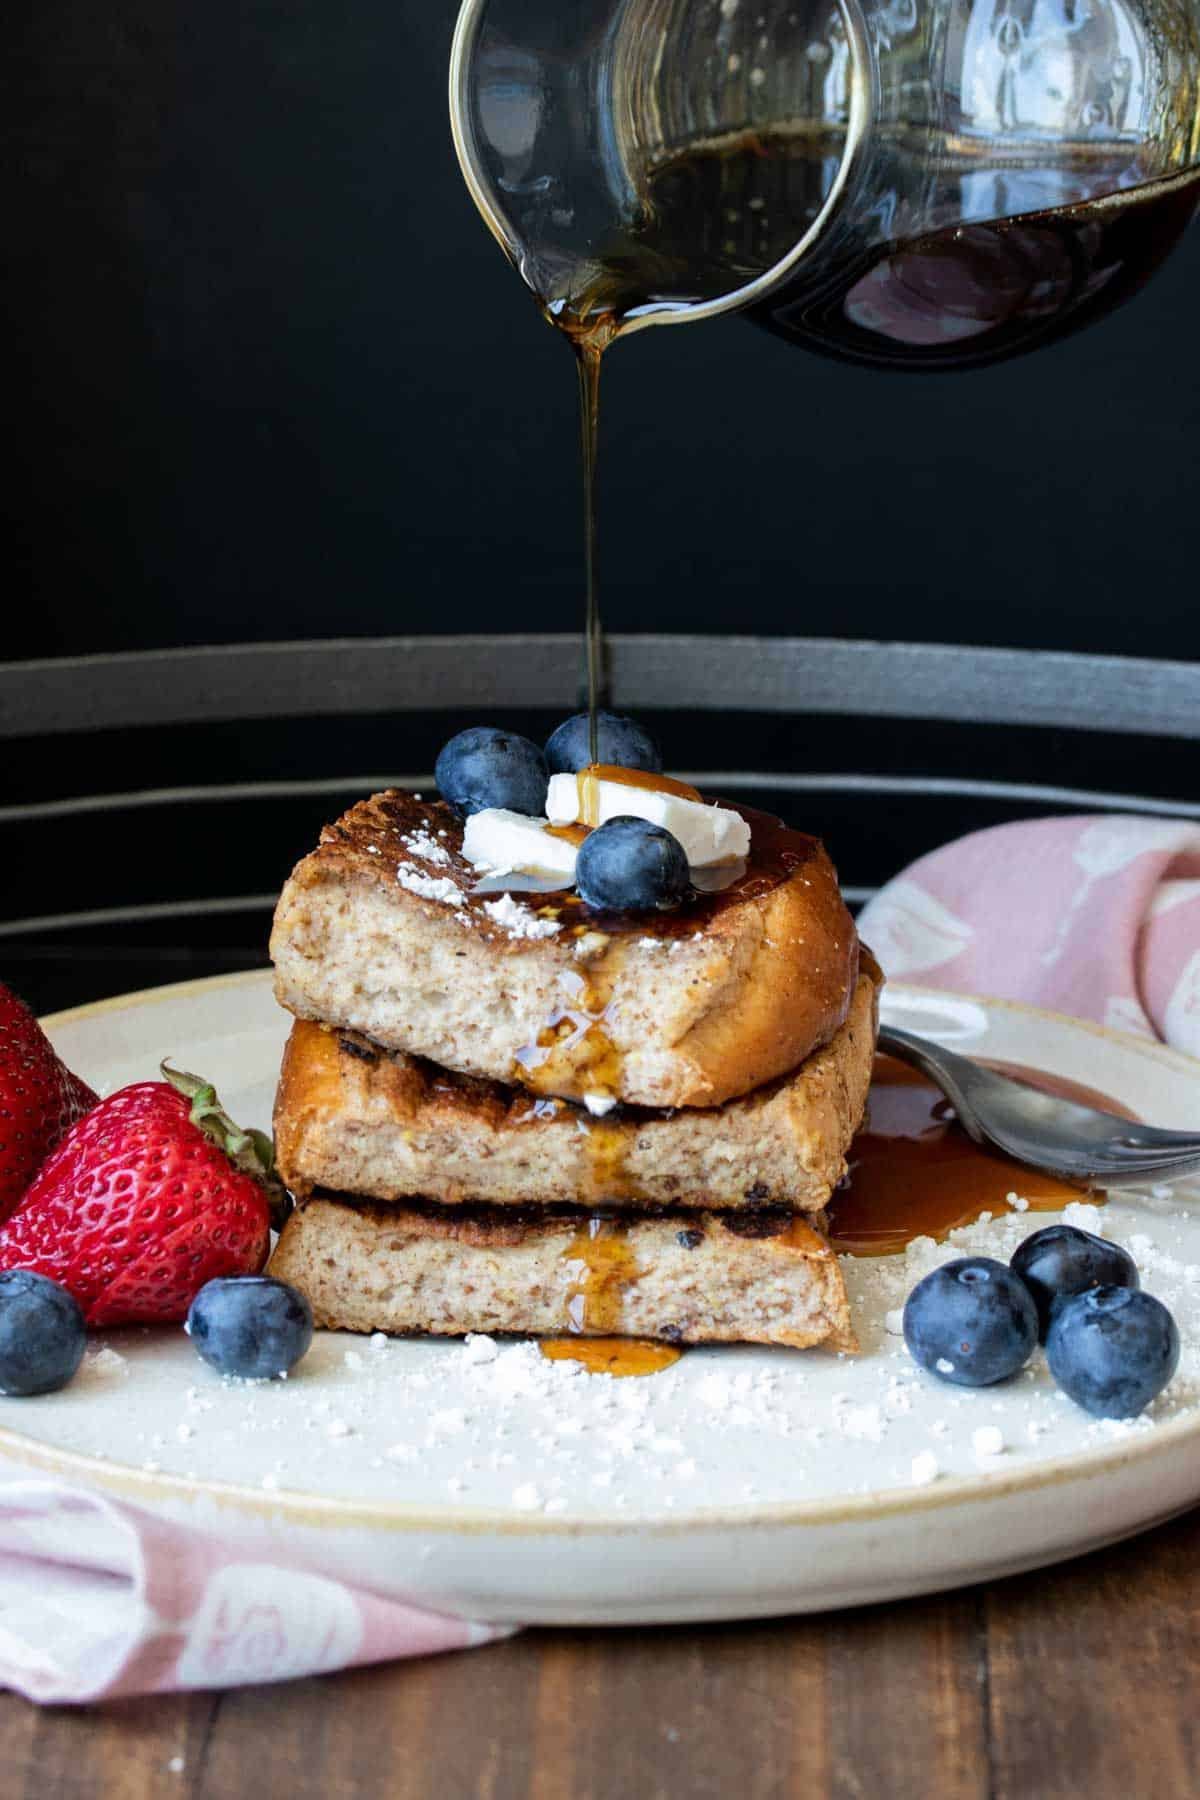 Maple syrup being poured onto a pile of French toast and berries